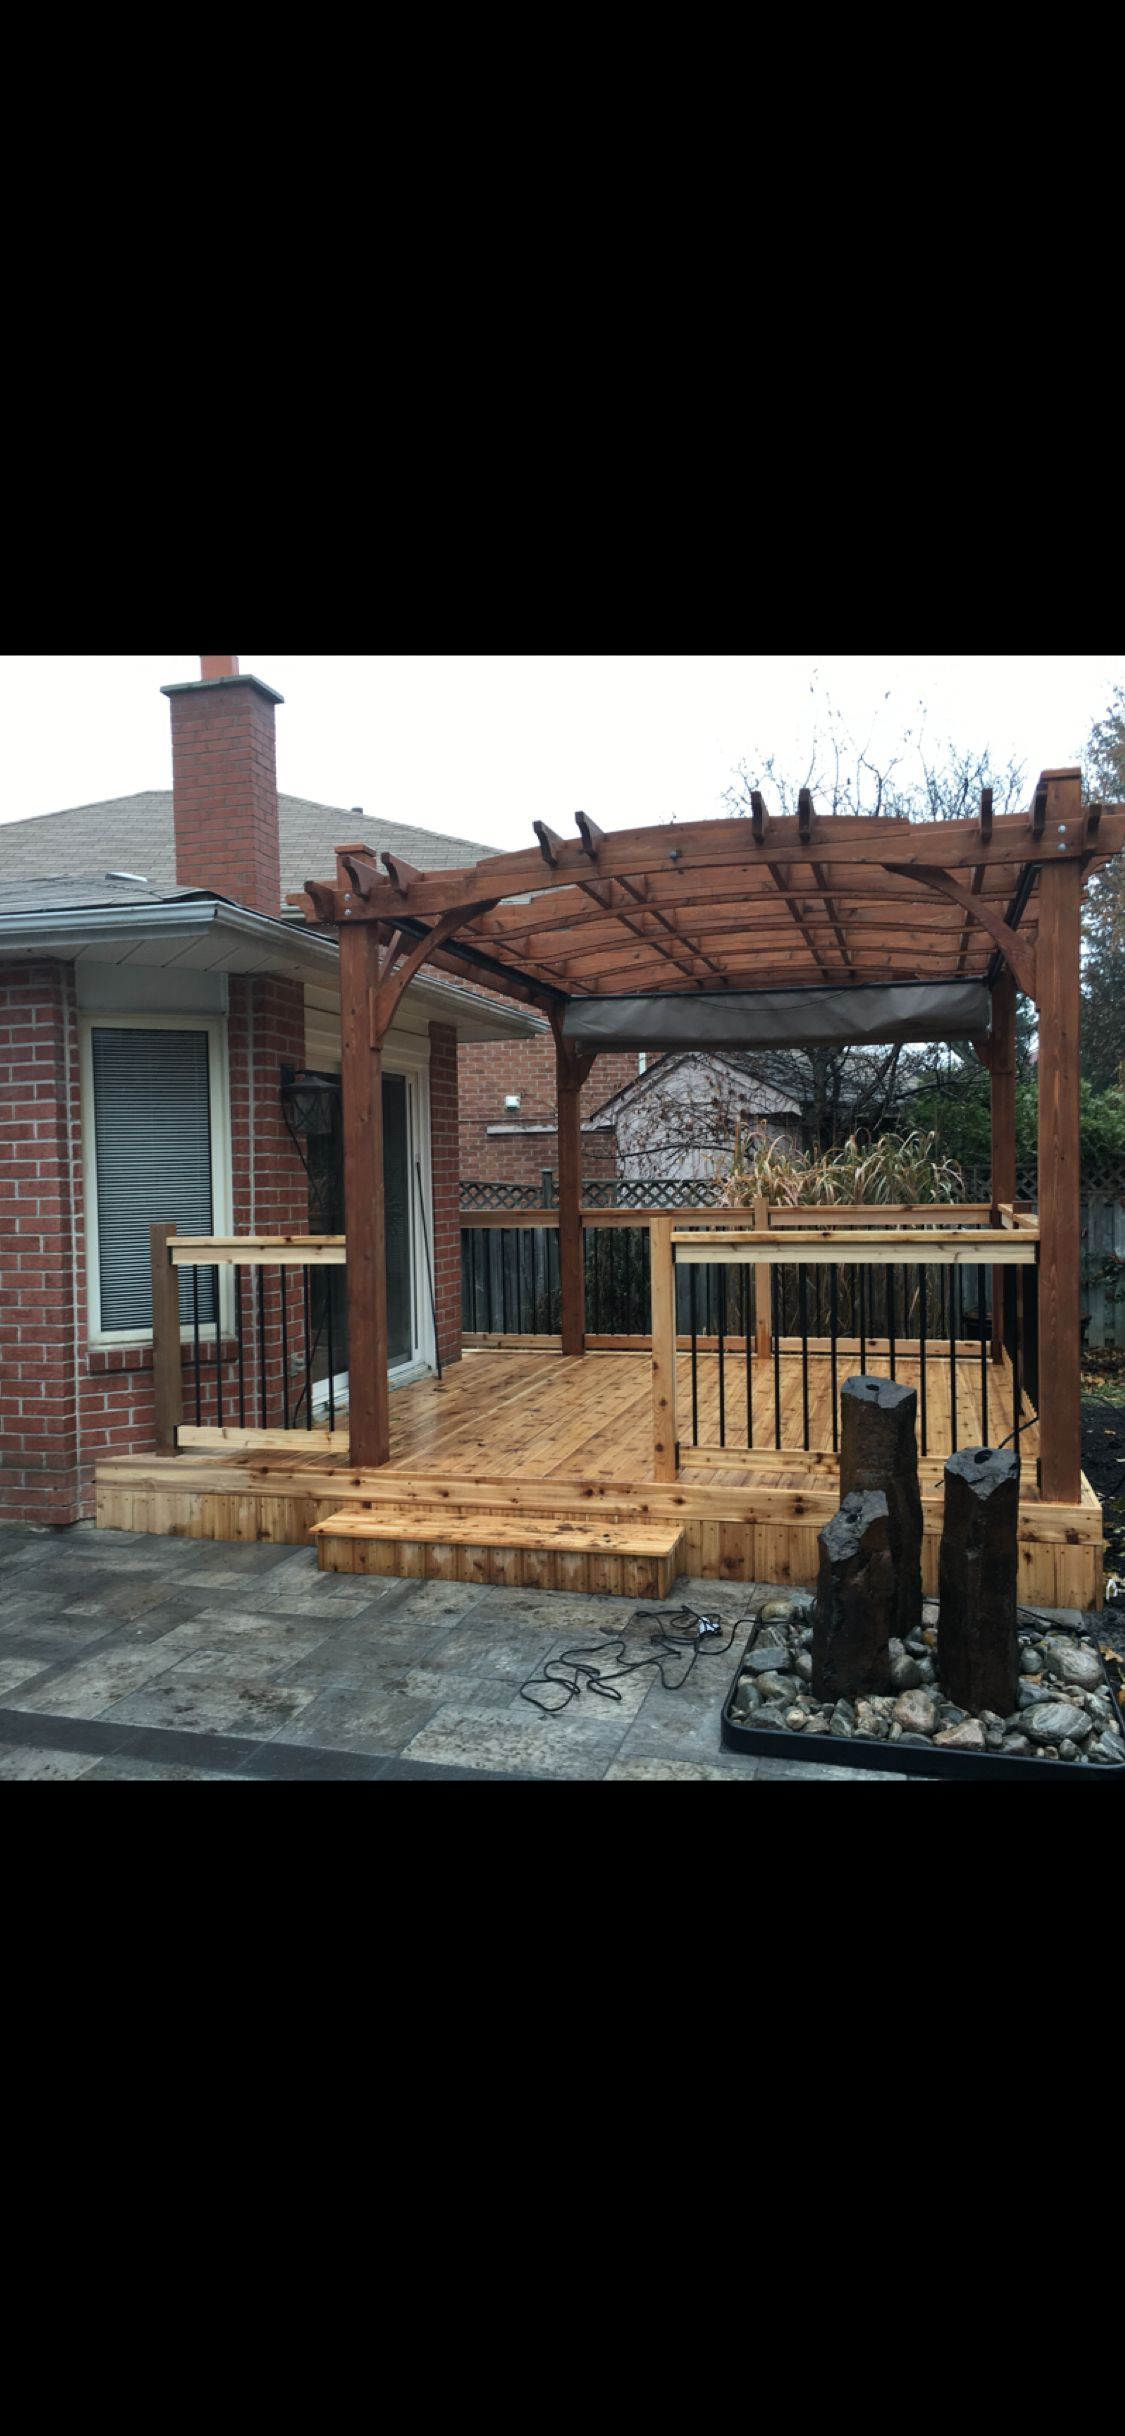 Backyard Contractors another beautiful backyard landscapingone of the best toronto's